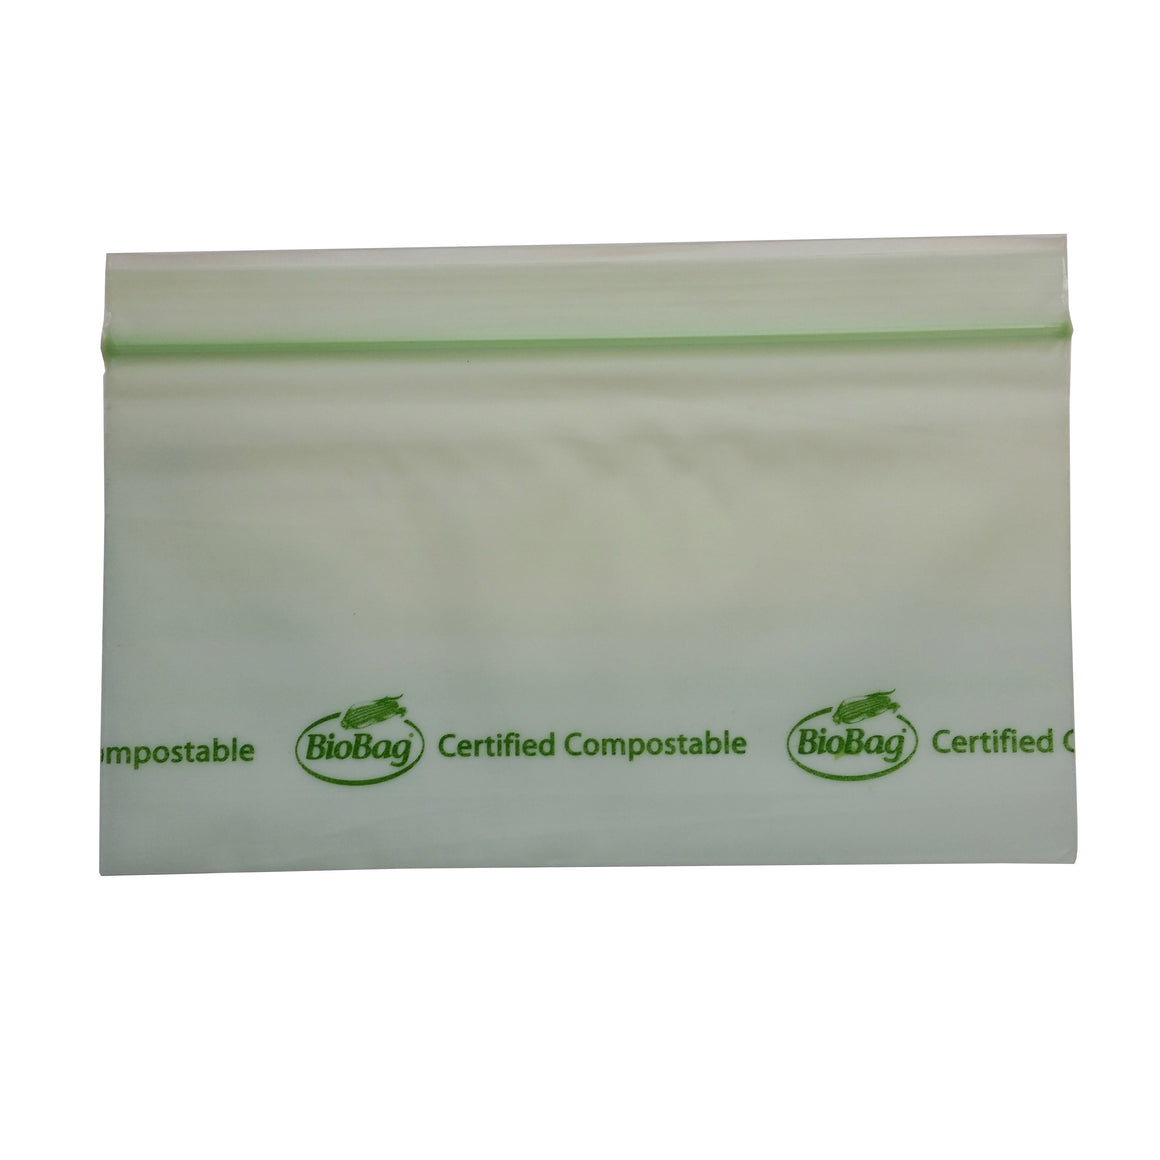 "6.5"" X 3.5"" X 1.8 Mil Snack Size Green Certified Compostable Plastic Resealable Food Storage Ziplock Bags"